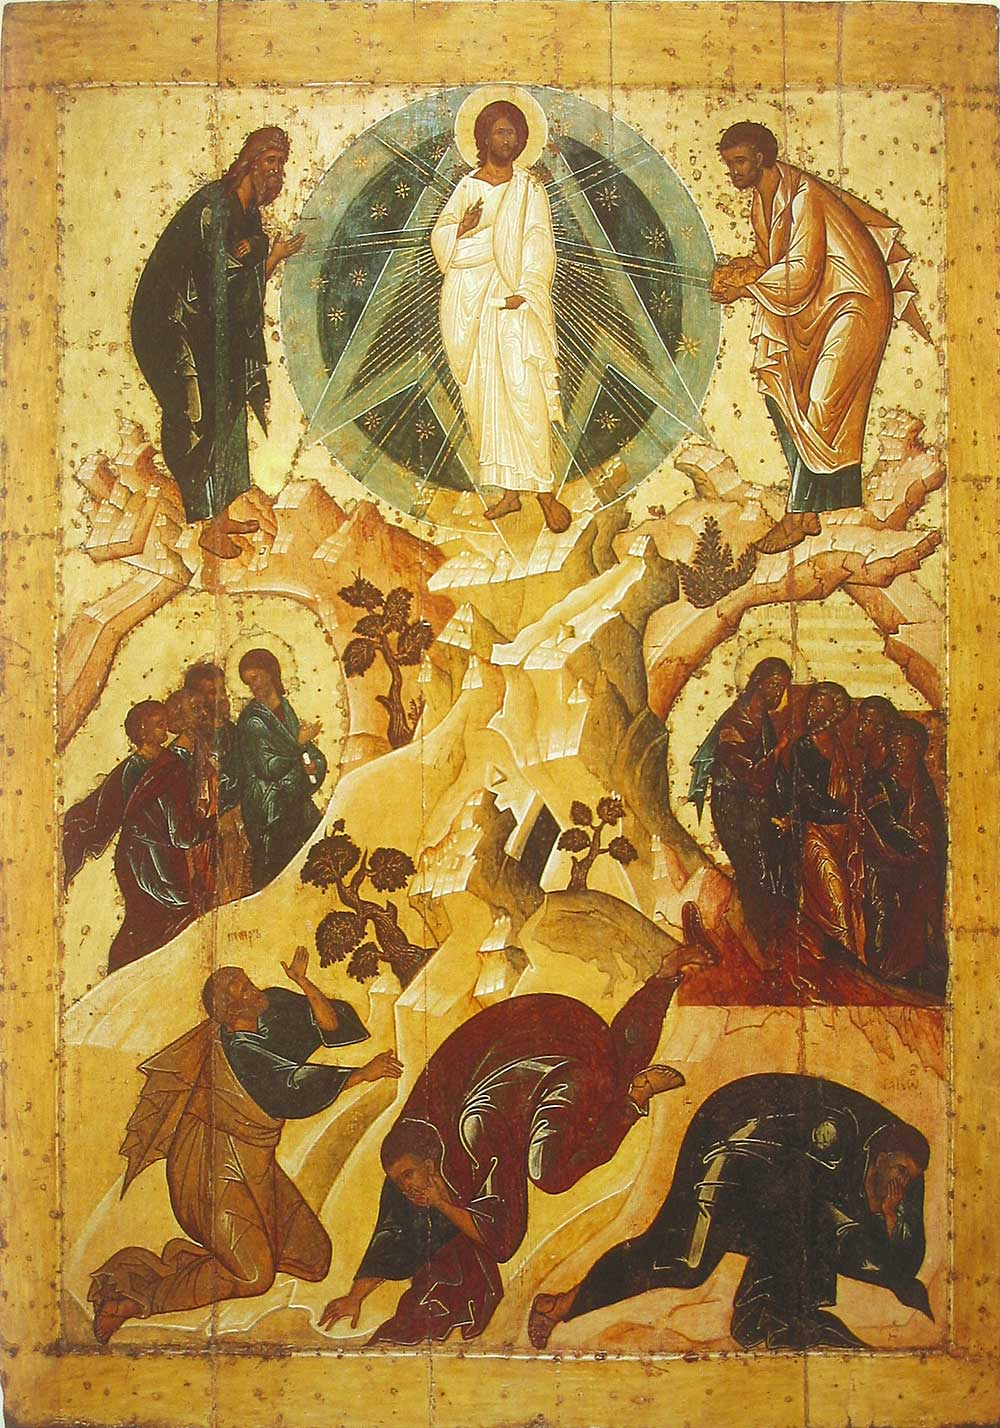 Icon of the Transfiguration of the Lord: a description of the plot and the image